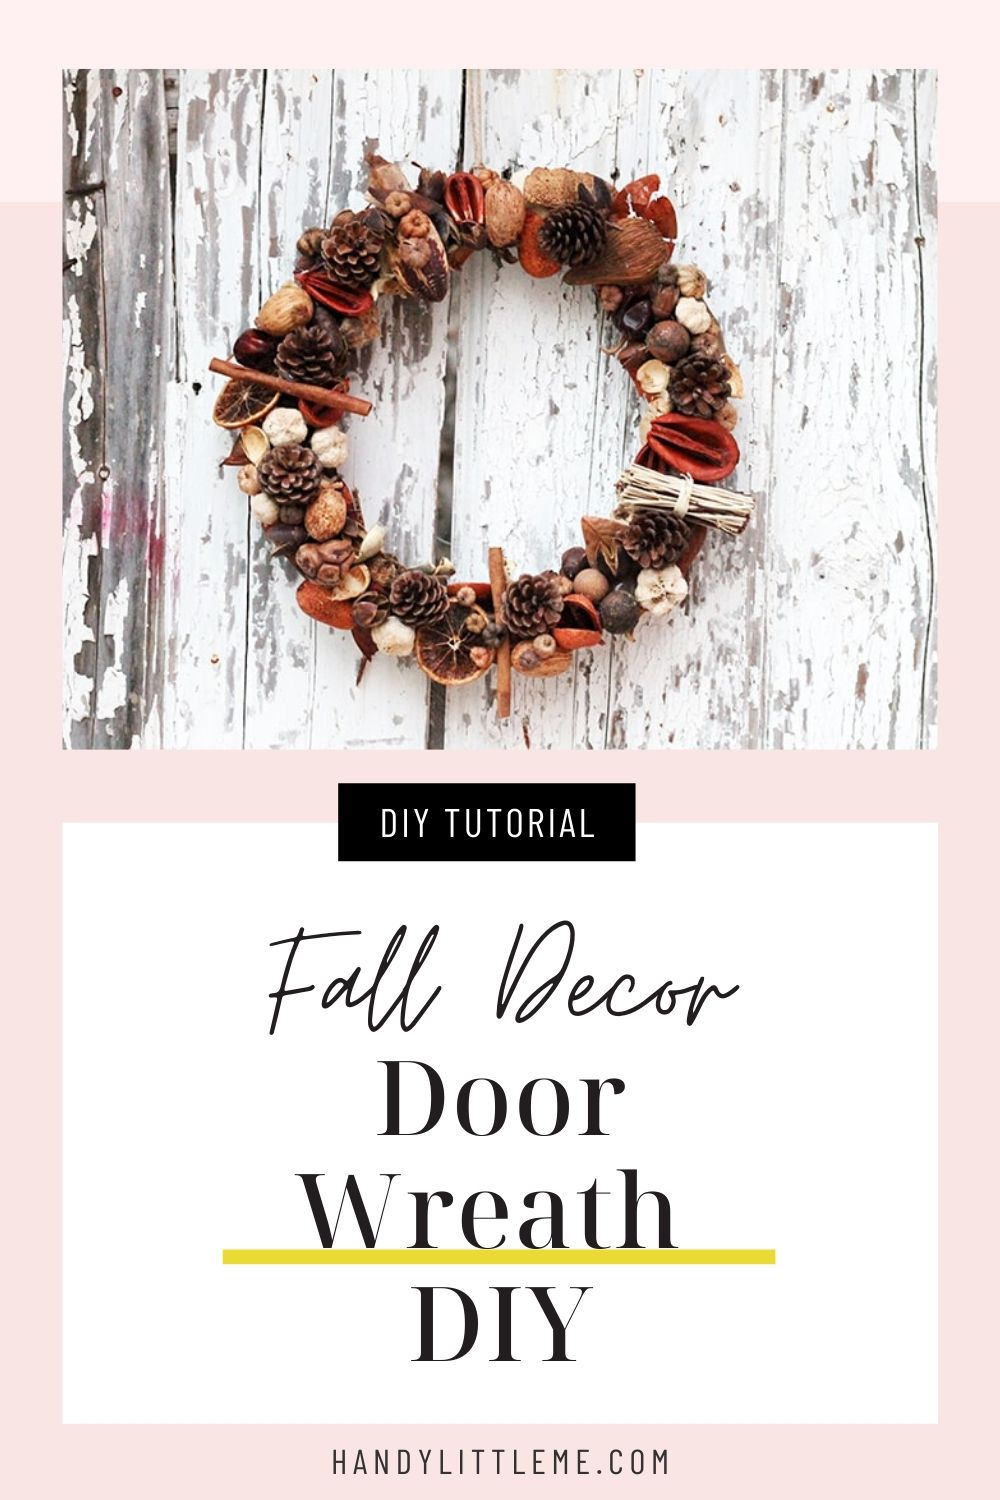 Door wreath DIY